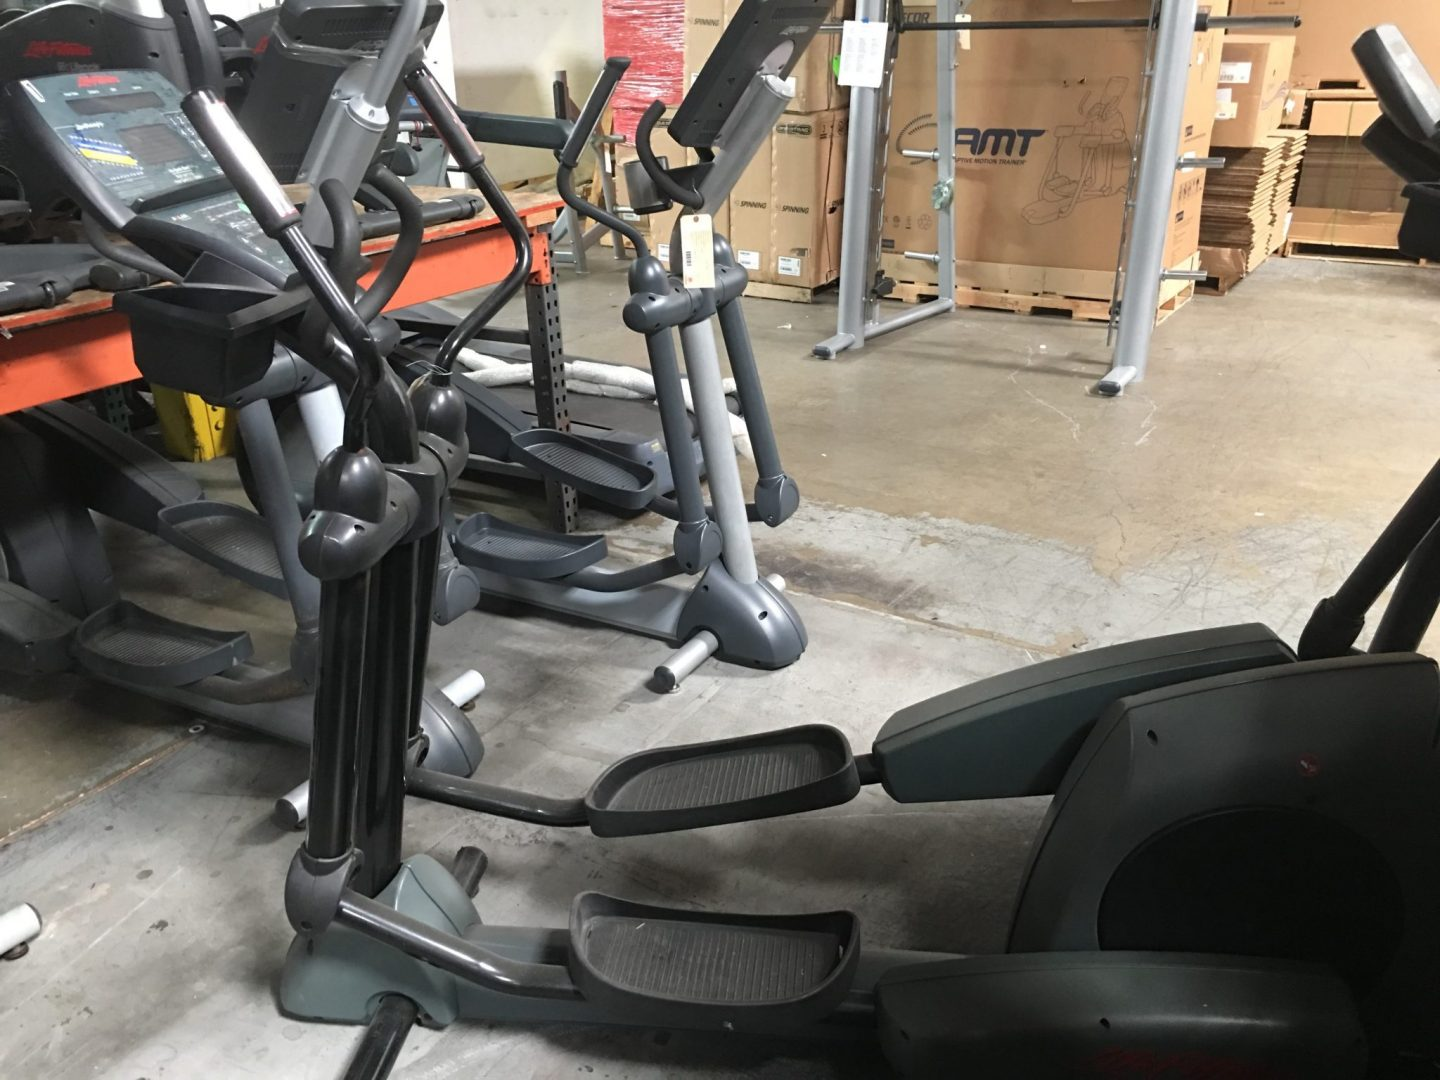 Life Fitness 9500HR Next Gen Cross Trainer Elliptical